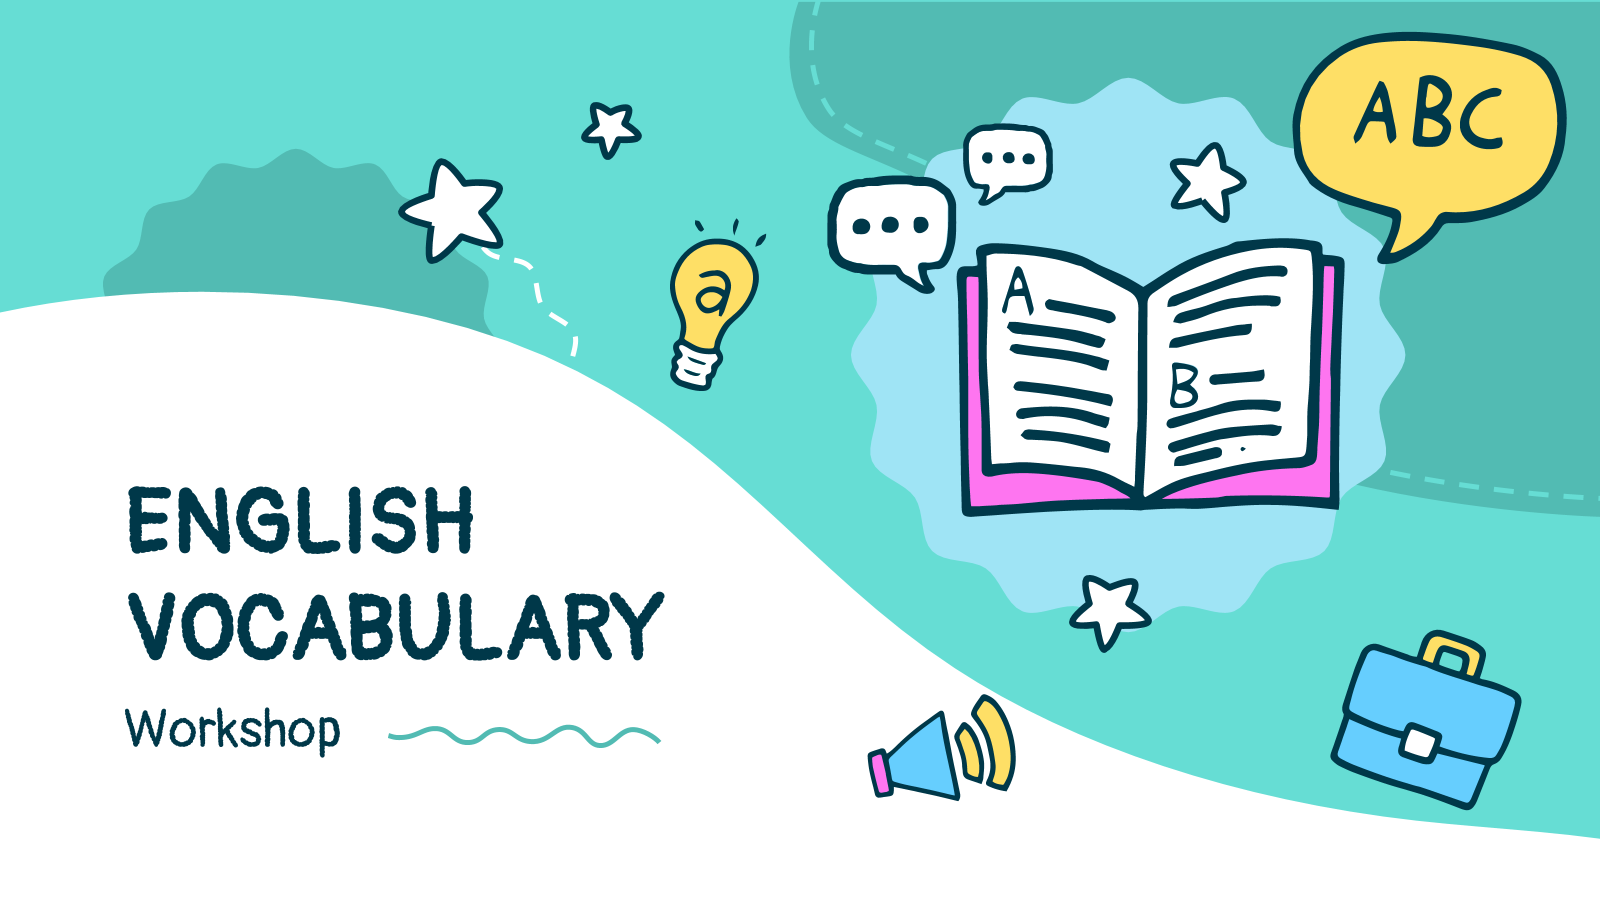 English Vocabulary Workshop presentation template